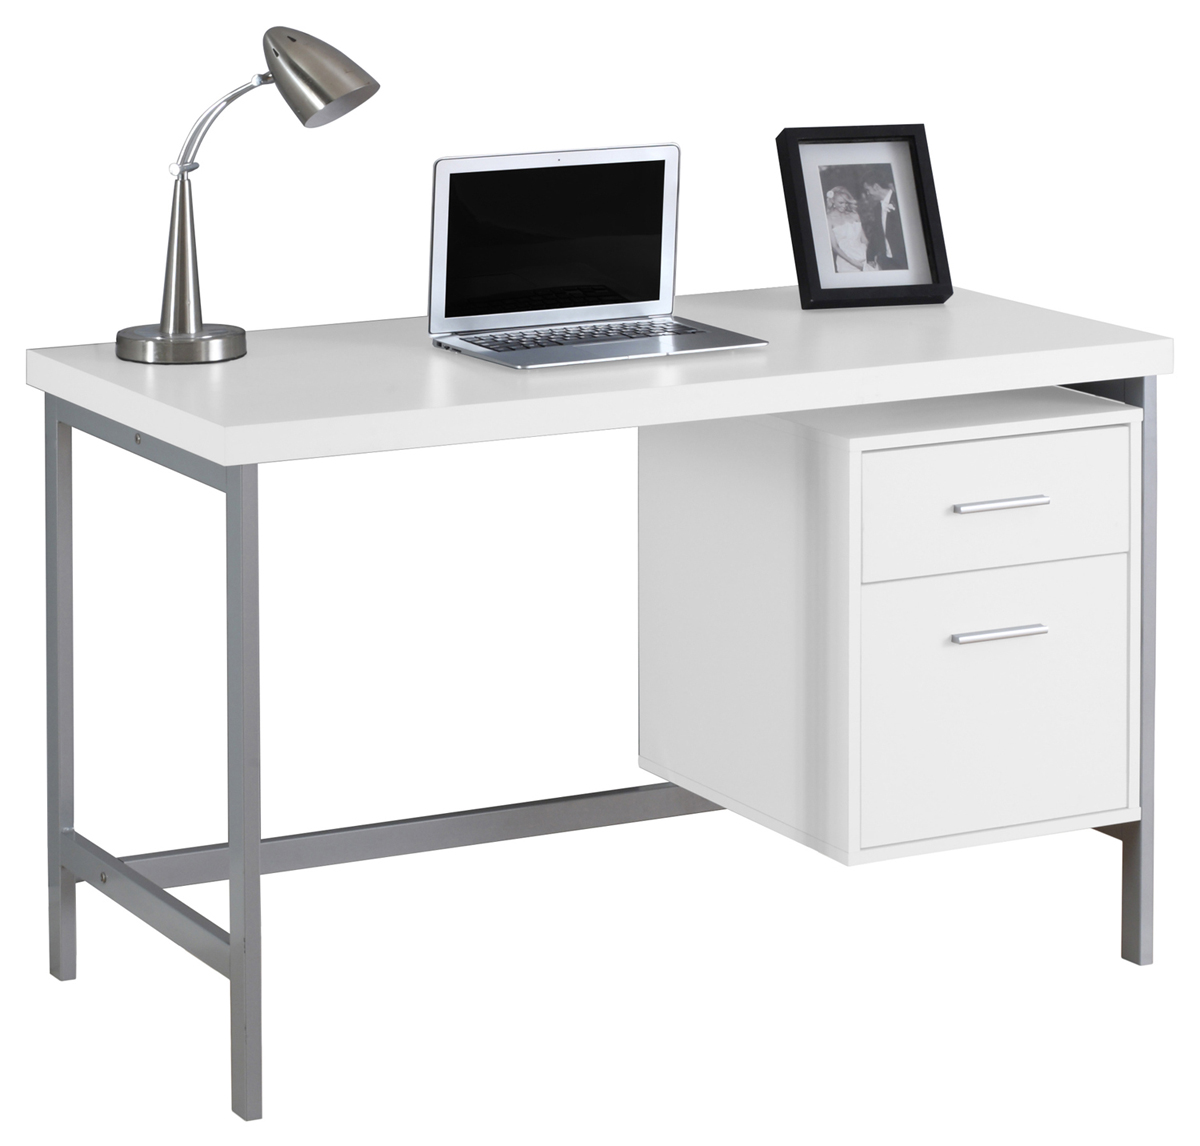 "48"" Computer Desk with Storage Drawers, Chrome Metal and White"